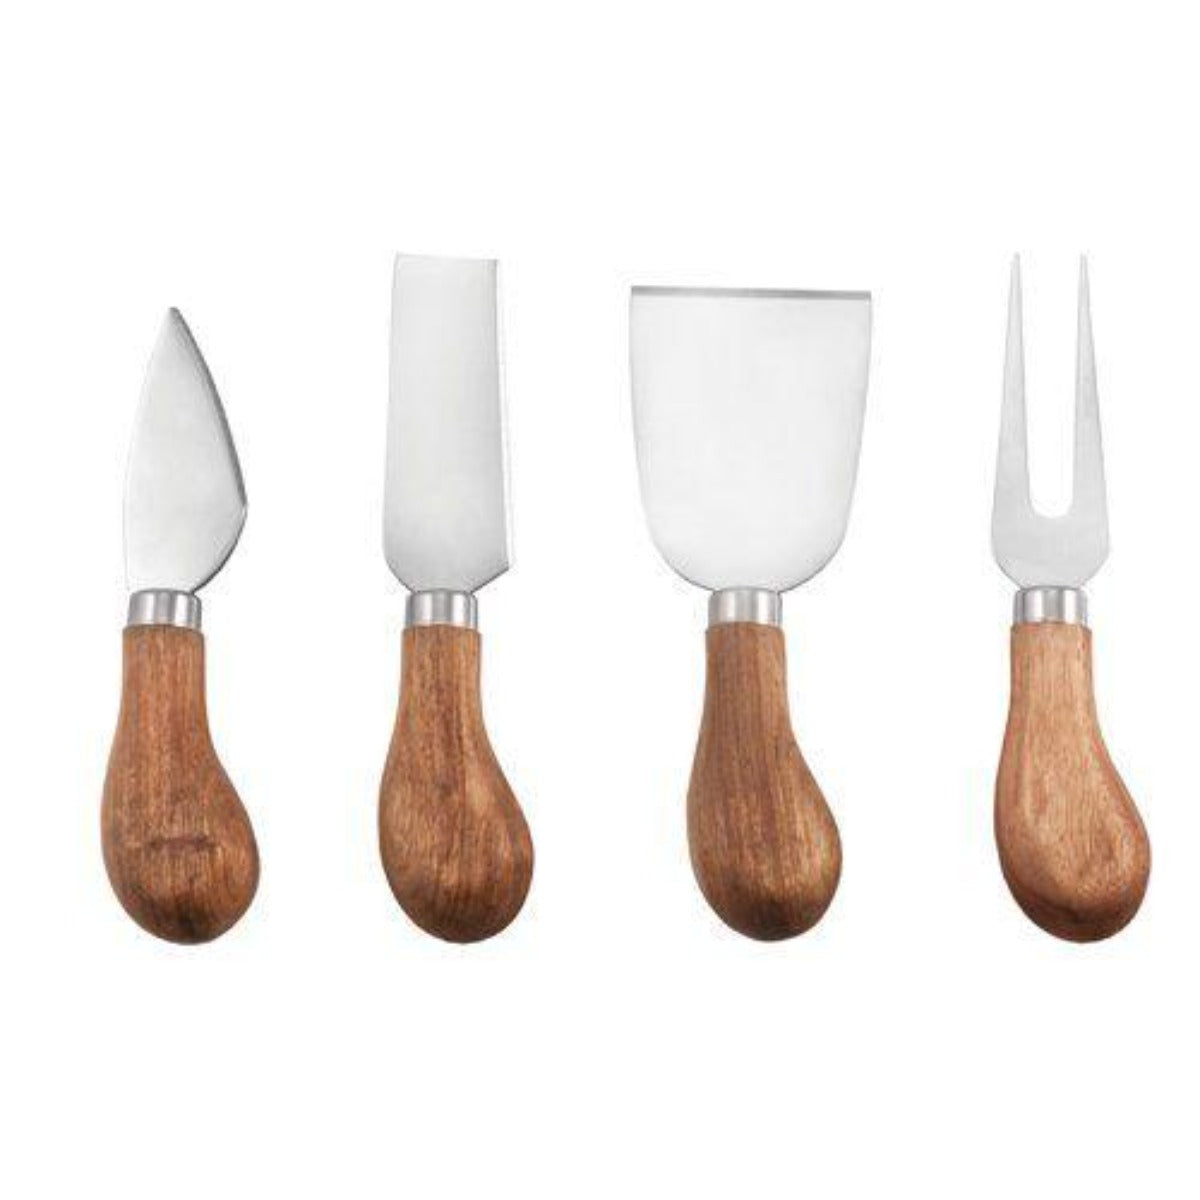 Gourmet Cheese Knives